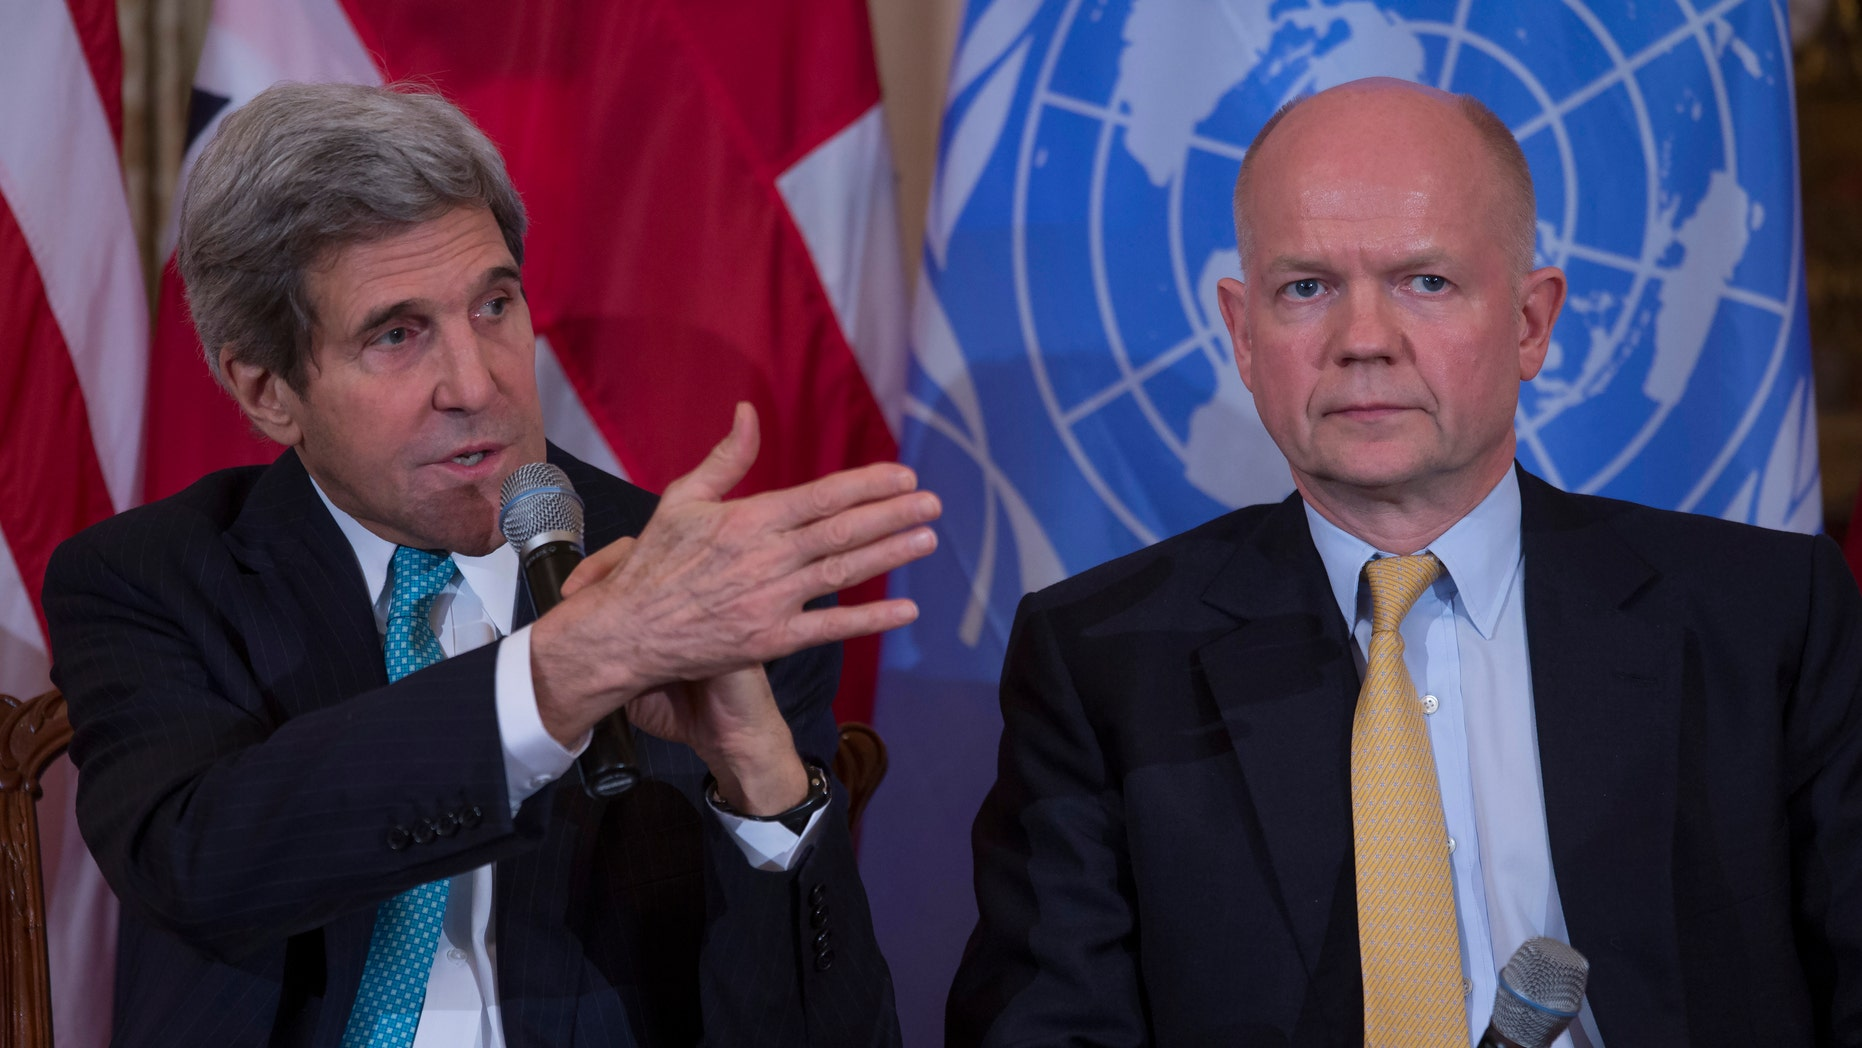 Feb. 25, 2014: British Foreign Secretary William Hague listens at right as Secretary of State John Kerry speaks at the State Department in Washington.